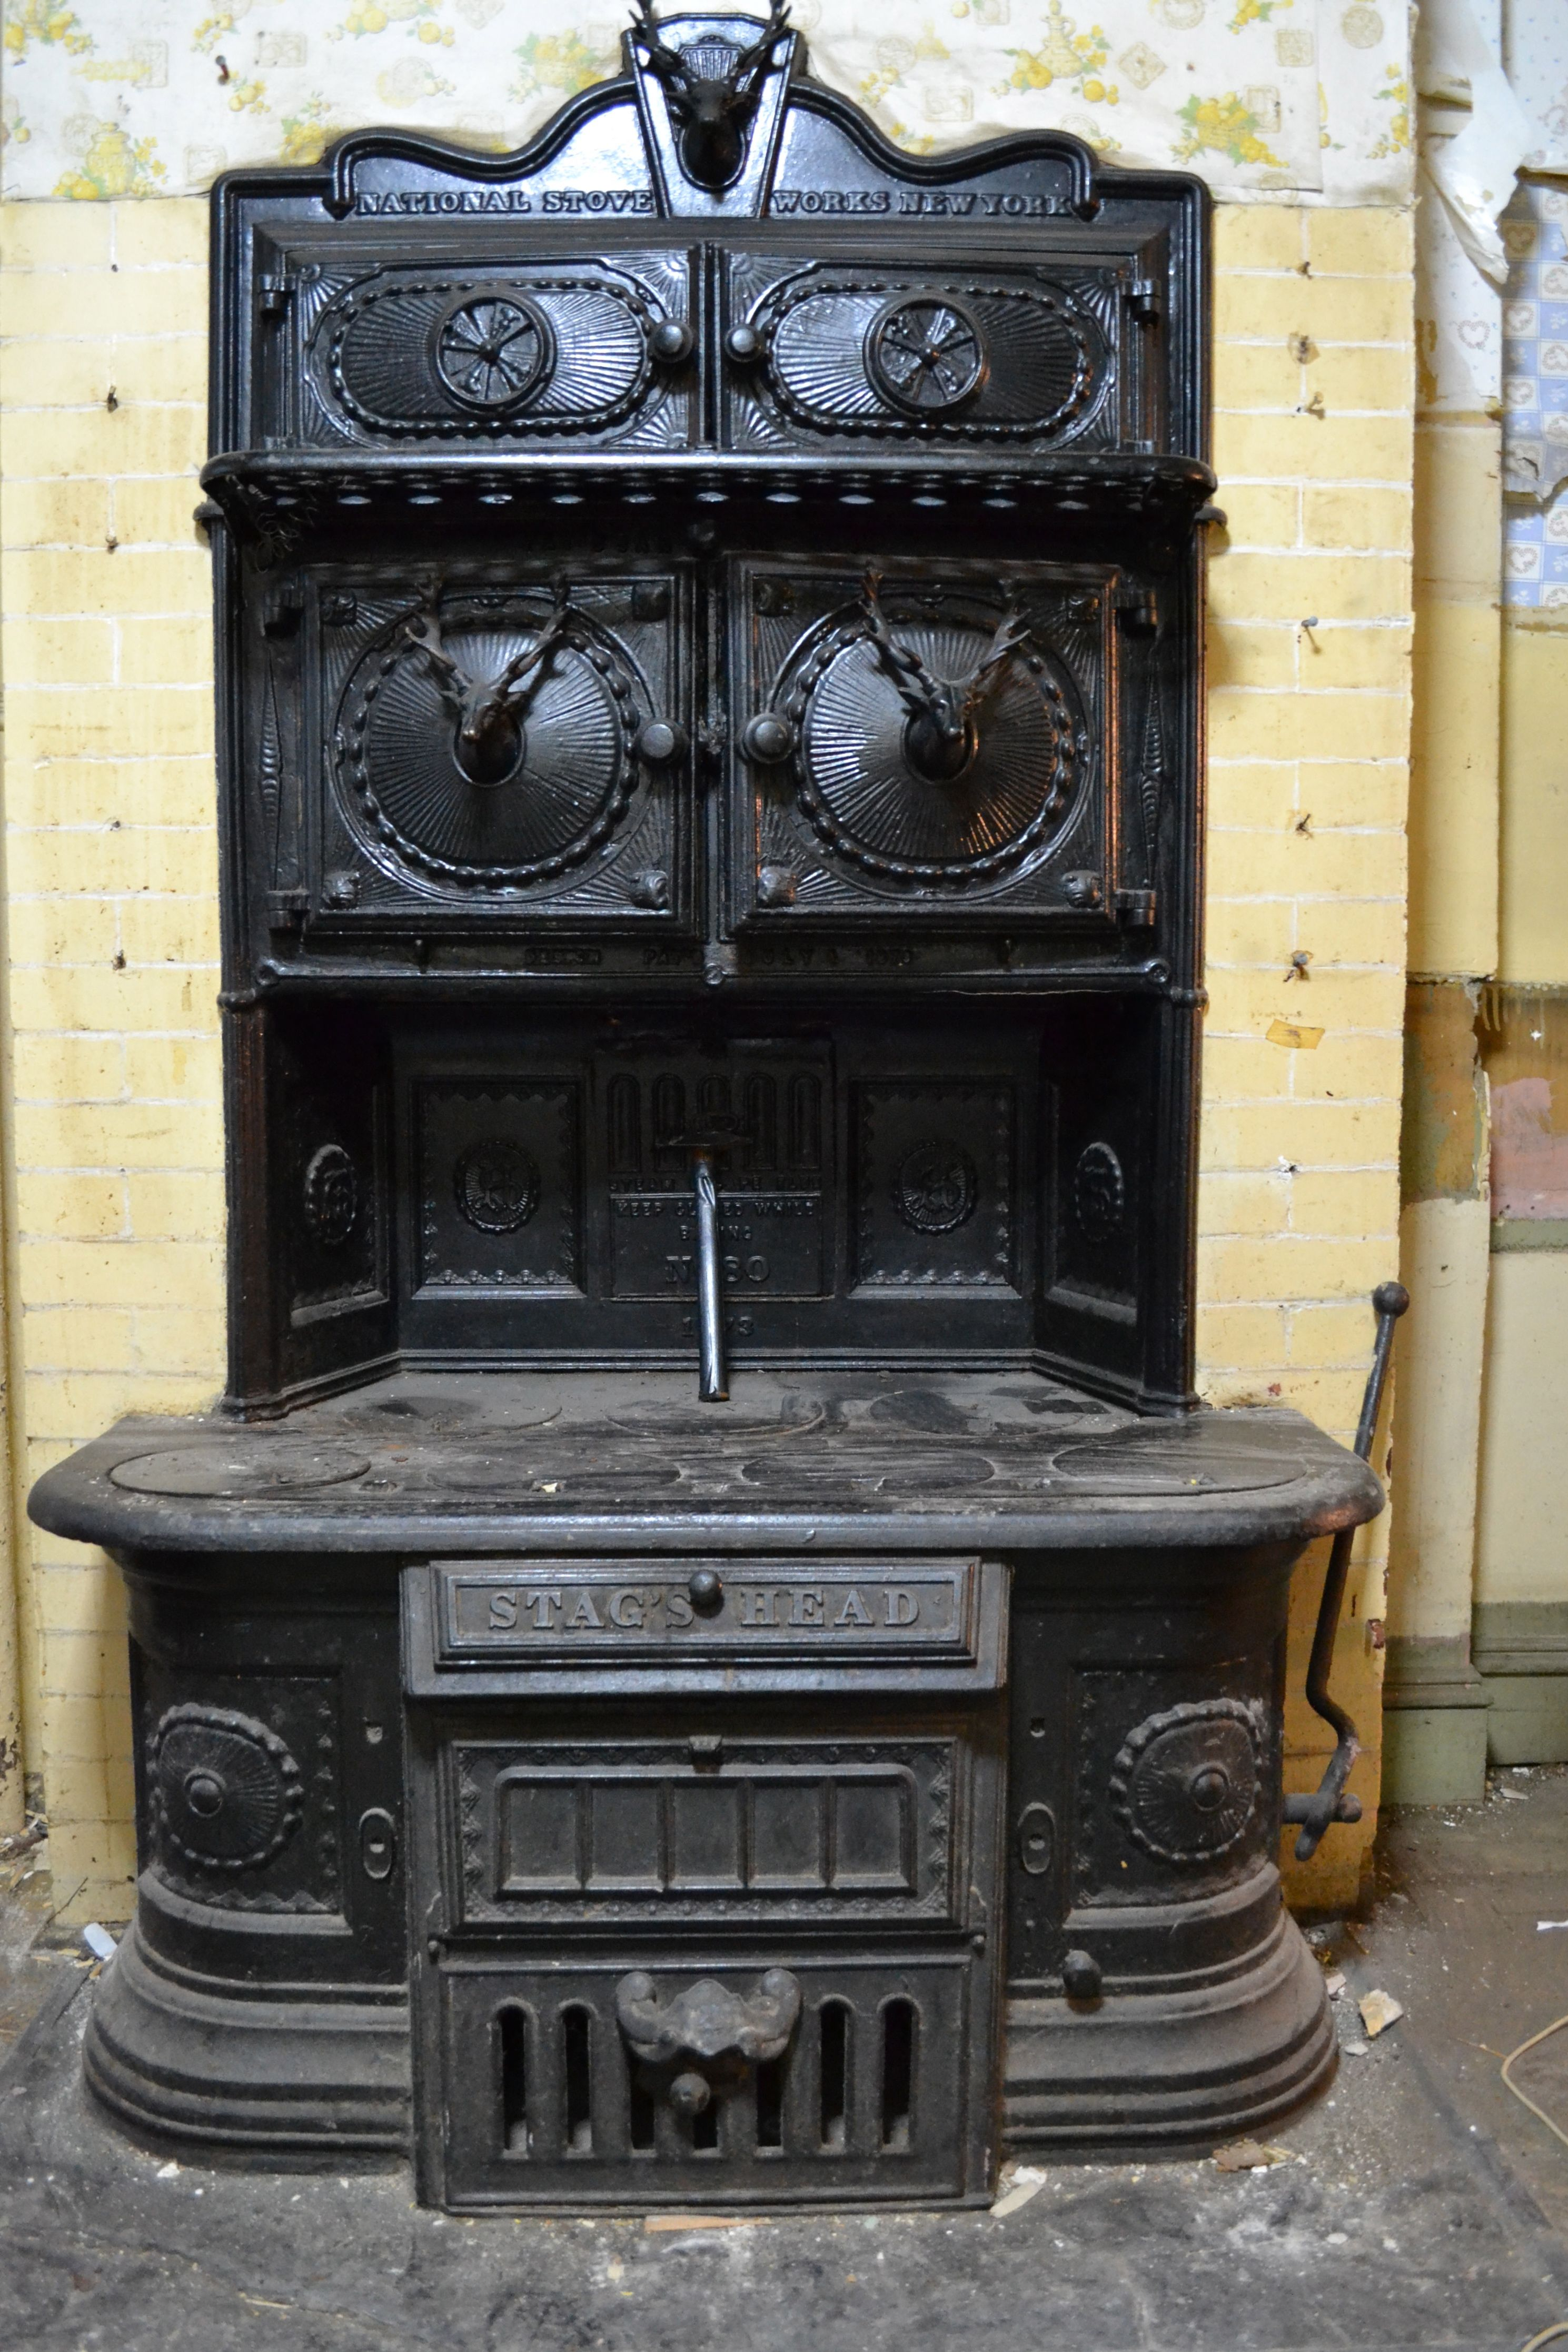 Vintage Stag S Head Cook Stove From National Stove Works